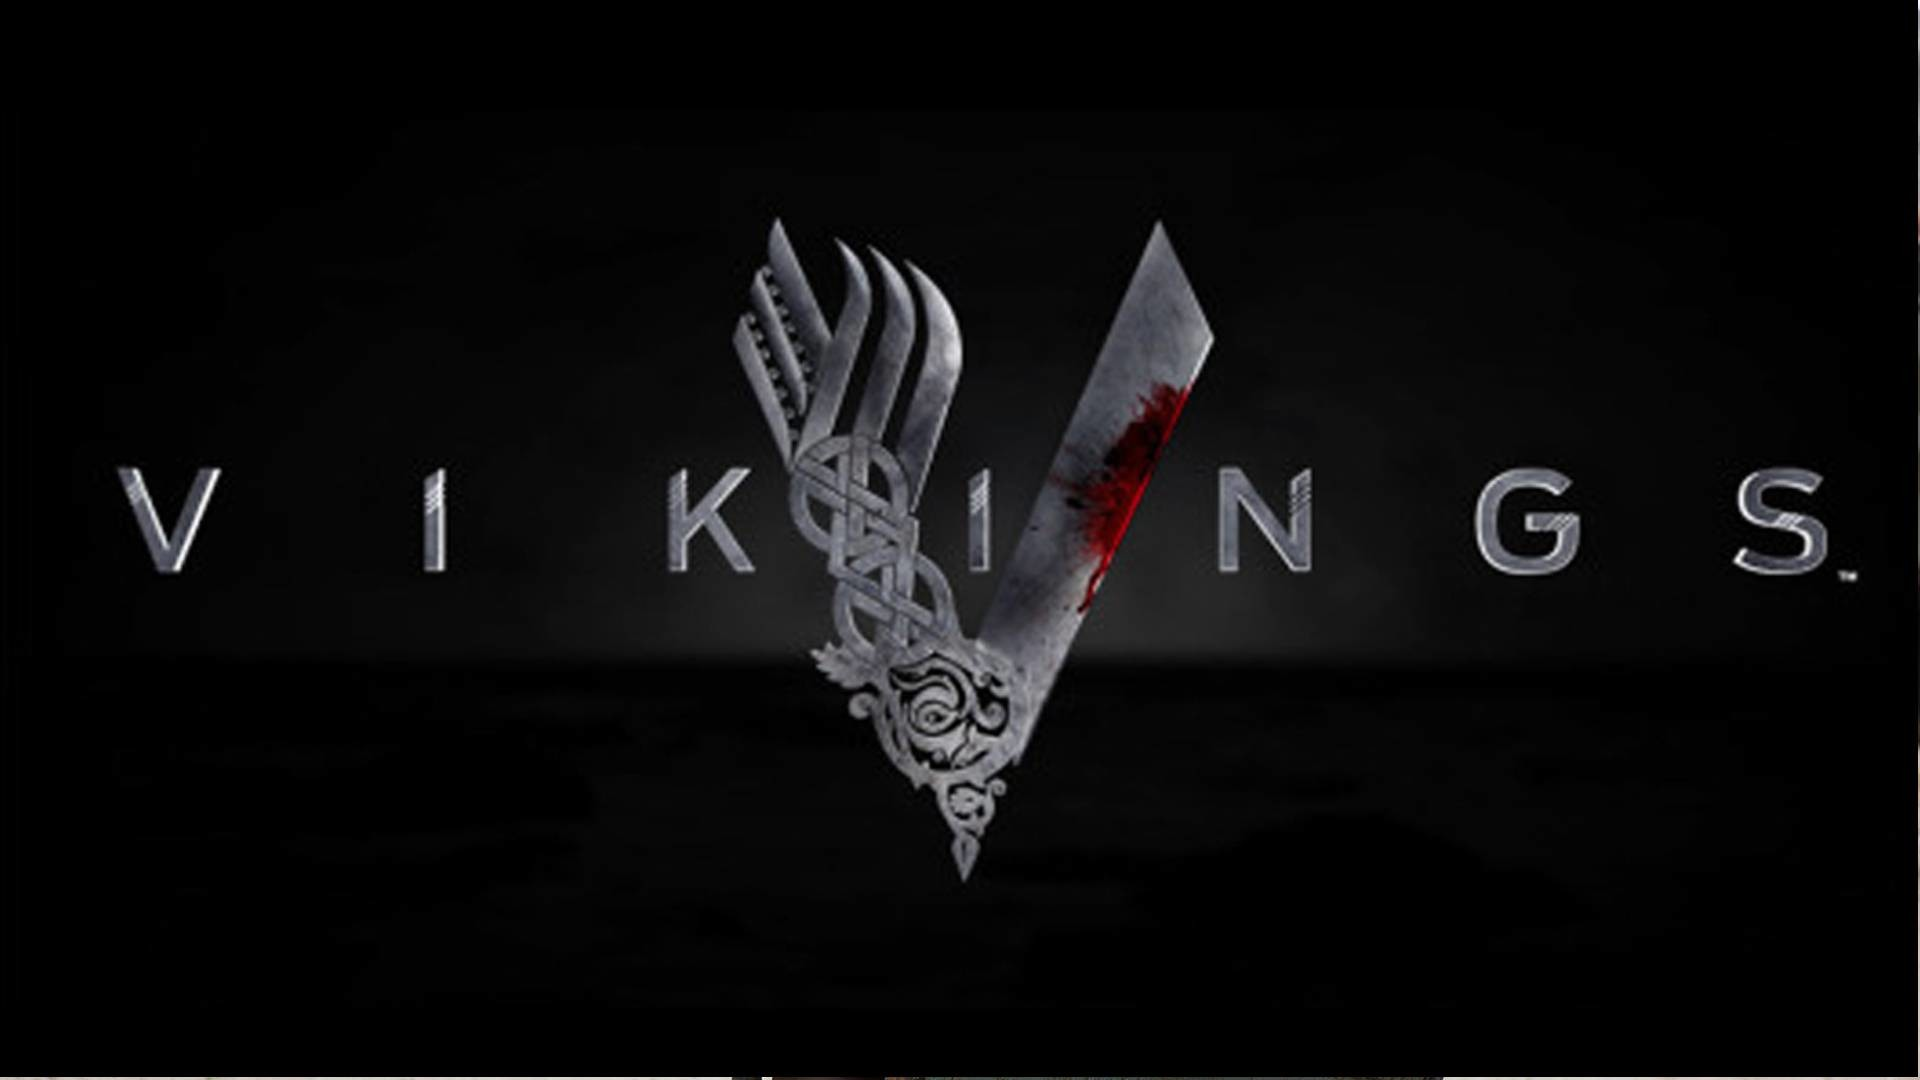 undefined Viking Wallpaper (39 Wallpapers) | Adorable Wallpapers |  Wallpapers | Pinterest | Vikings, Wallpaper and Hd wallpaper